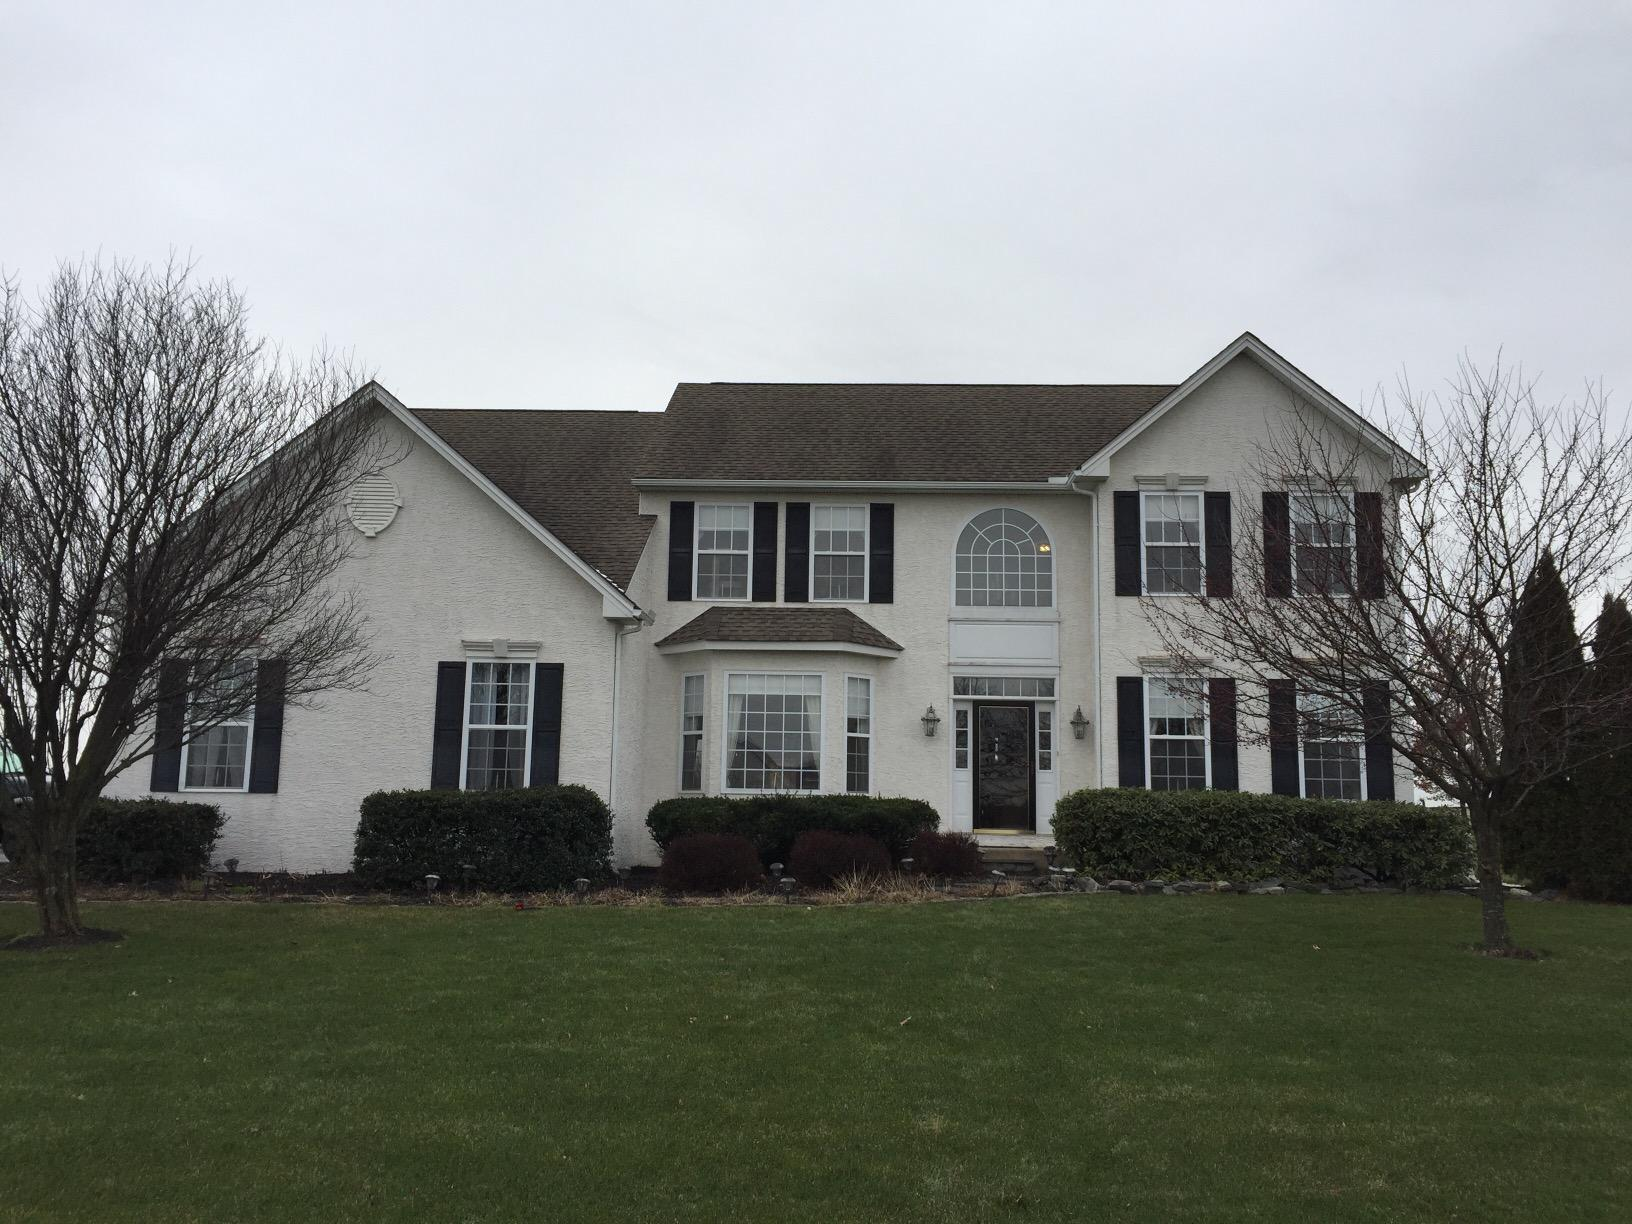 Stucco Remediation, Hardie Siding & Marvin Windows Installation in Honey Brook, PA - Before Photo